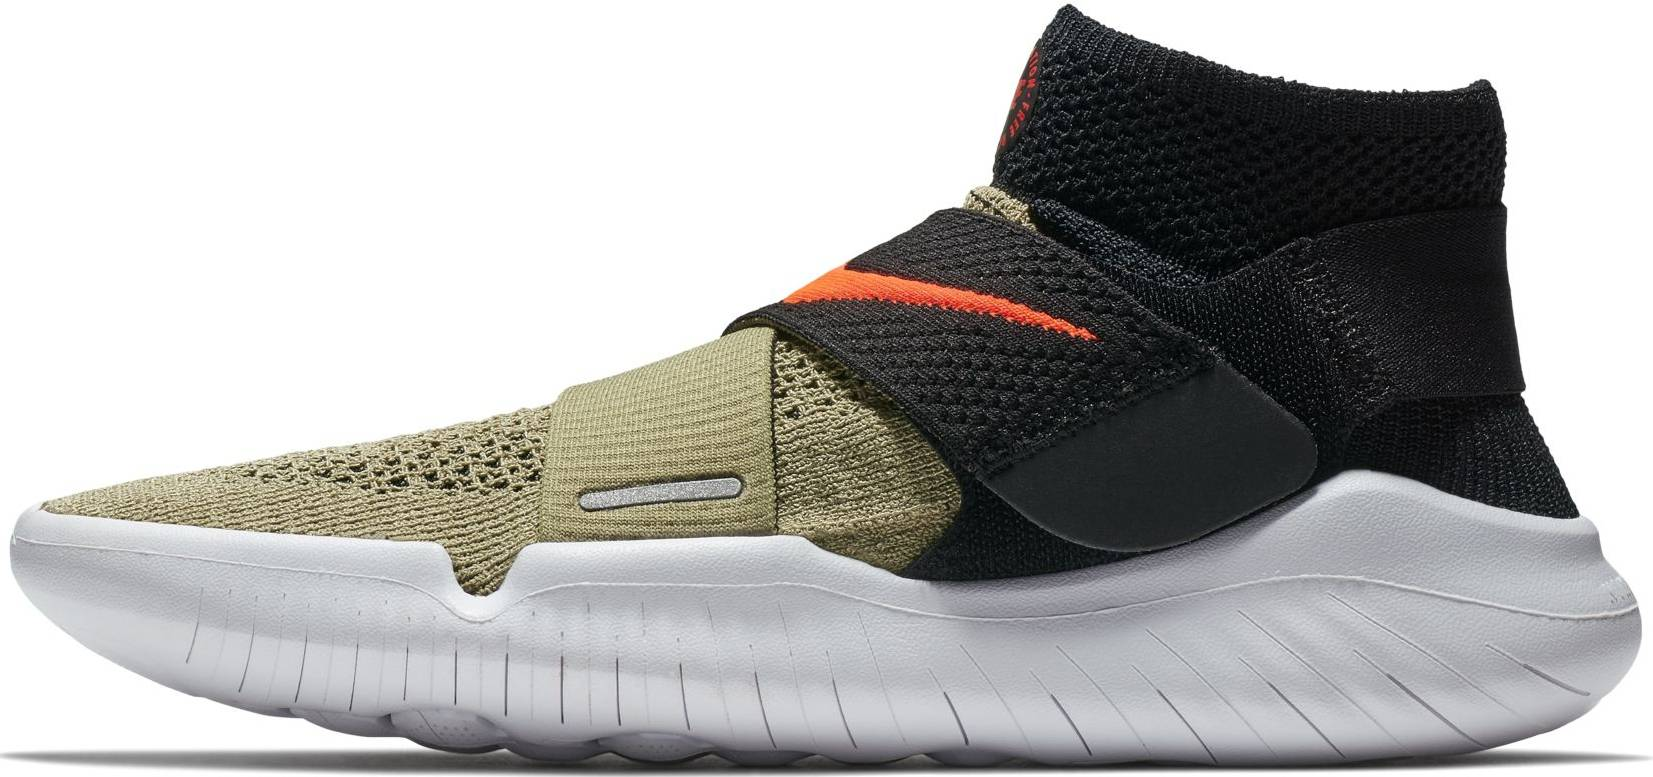 Agresivo Paciencia corazón  Only $80 + Review of Nike Free RN Motion Flyknit 2018 | RunRepeat